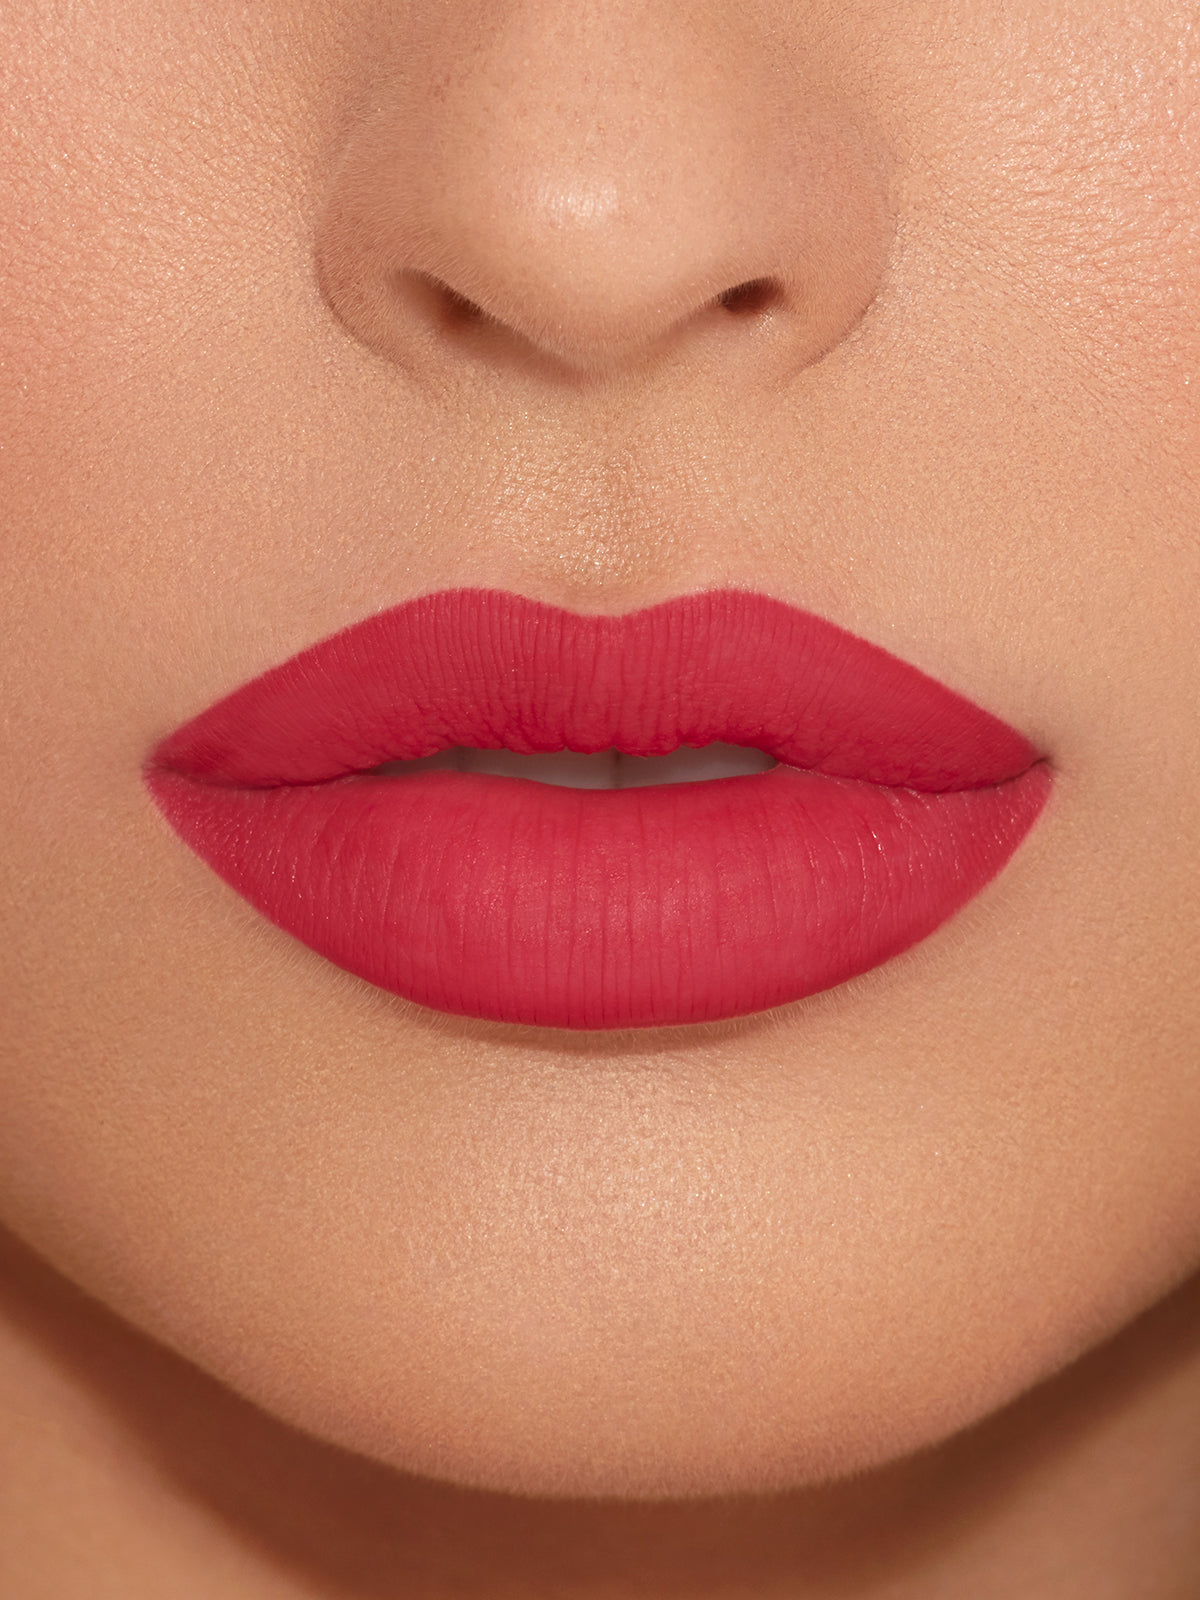 Cherry on Top | Lip Blush